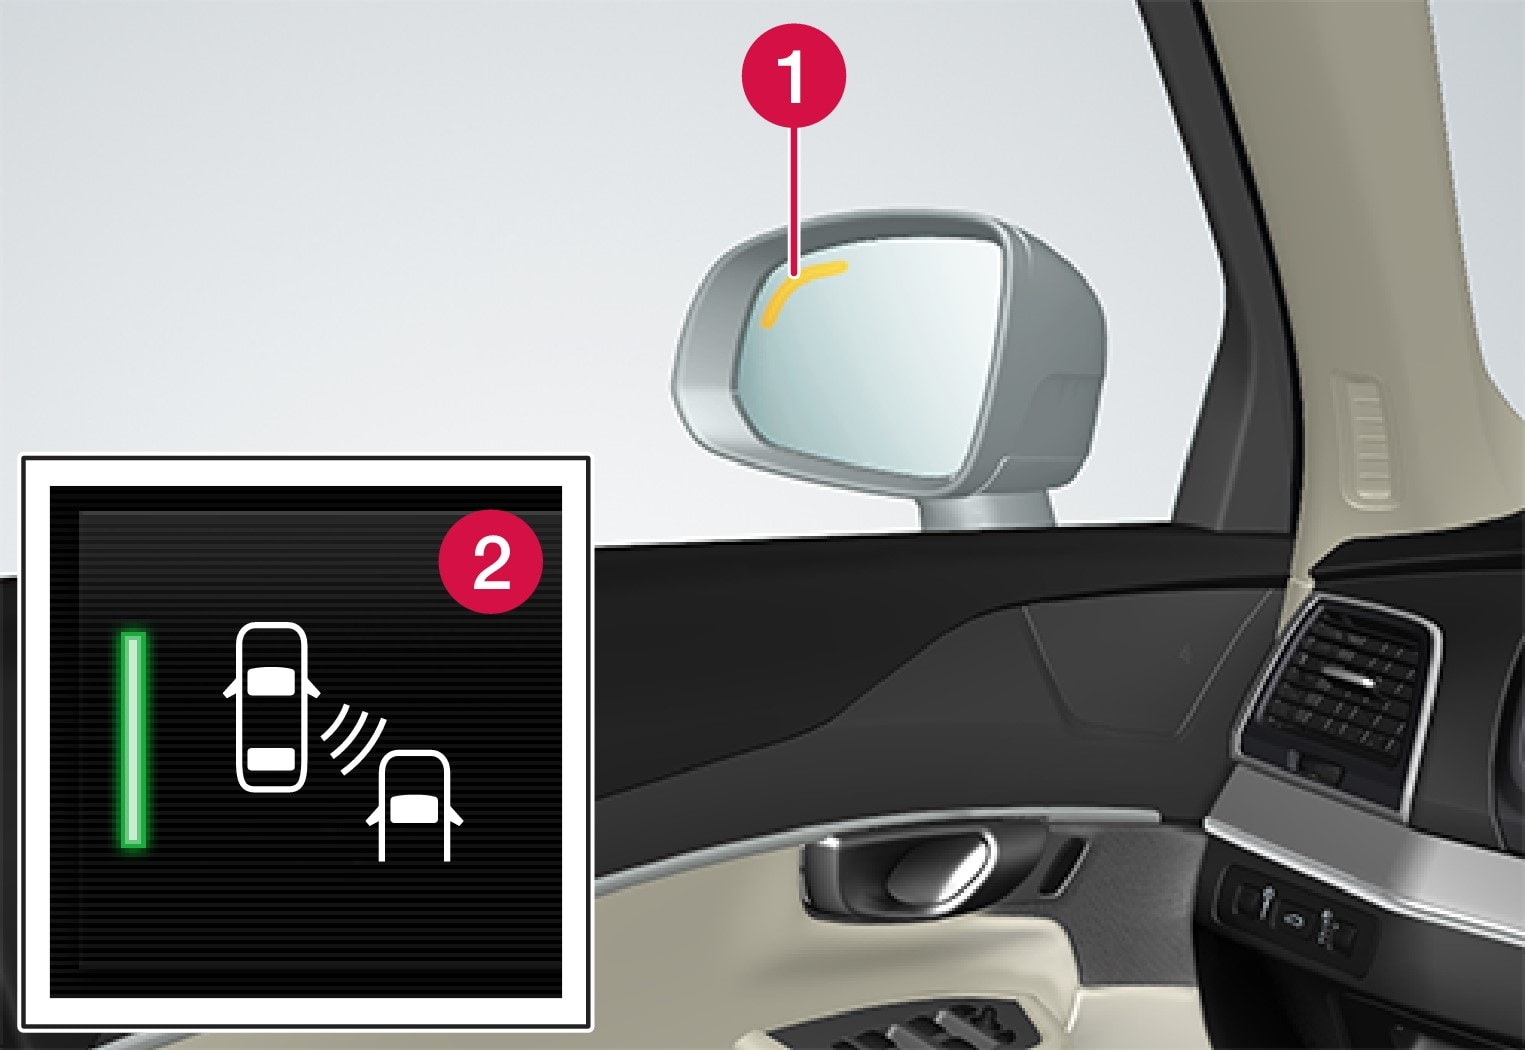 Location of Blind Spot Information lamp.